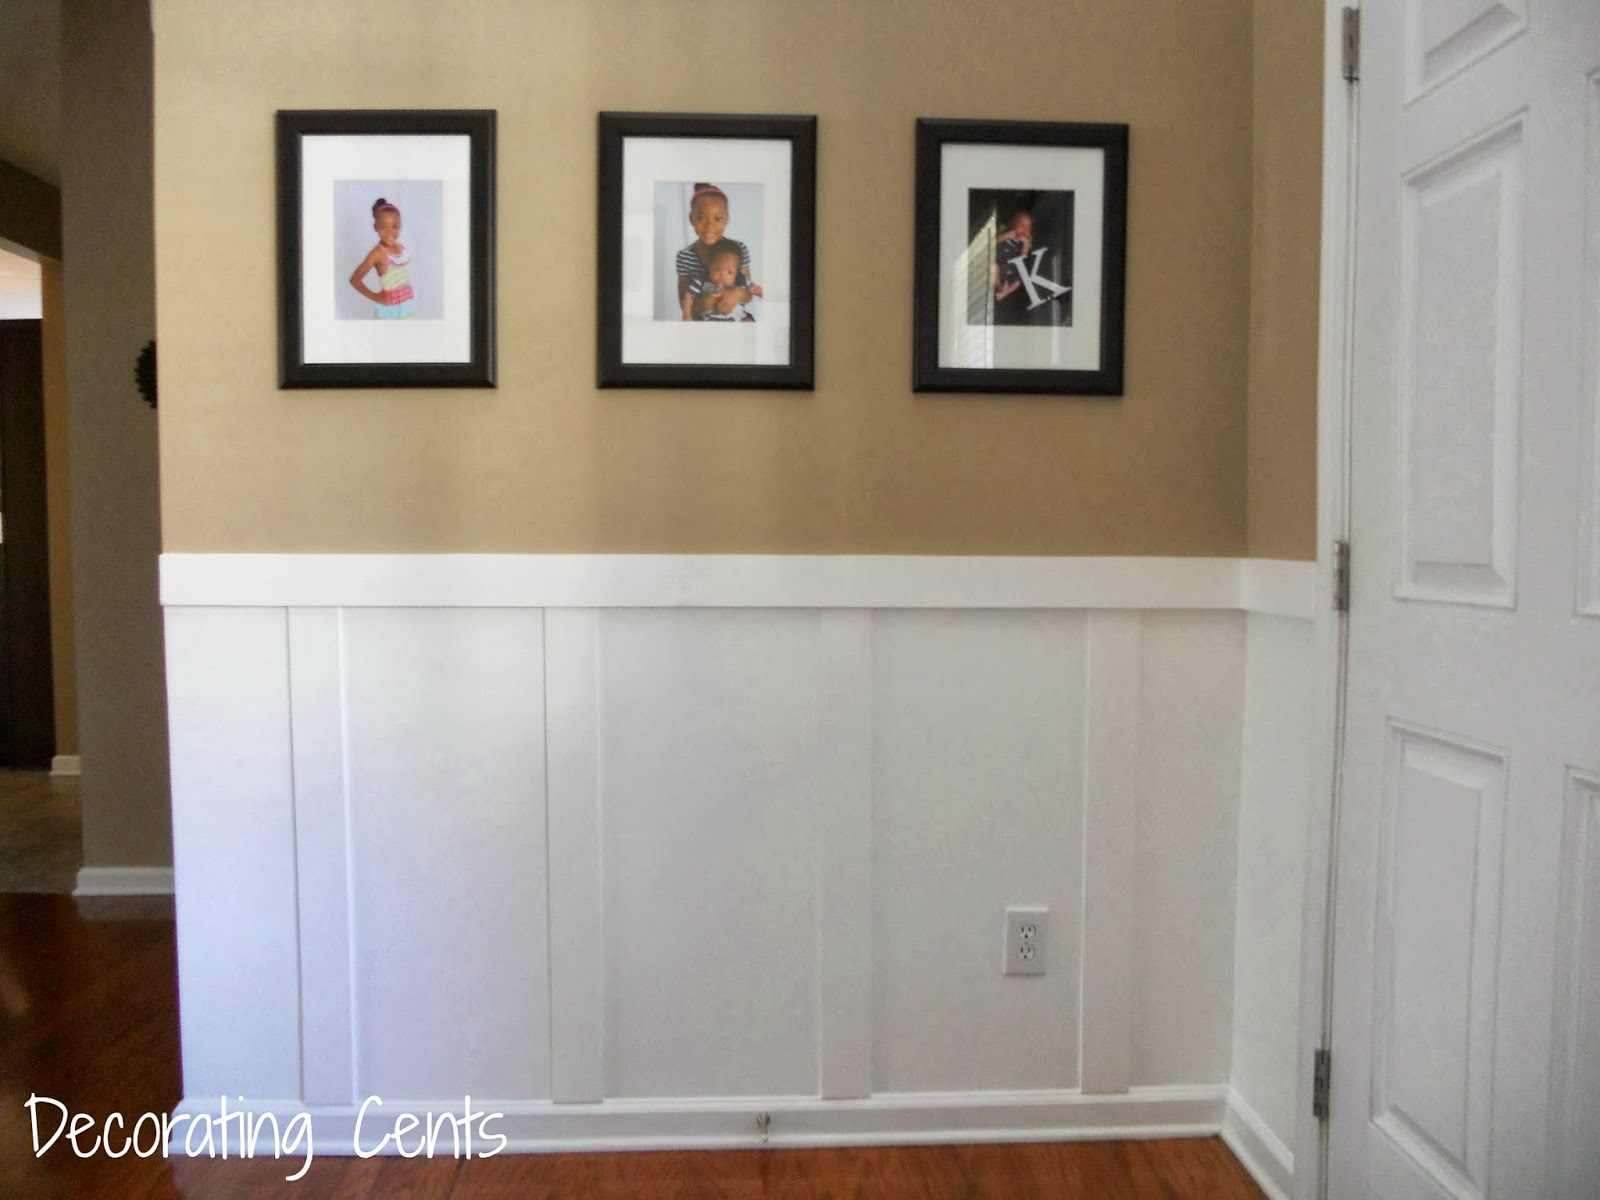 Decorating Cents: Foyer Photos